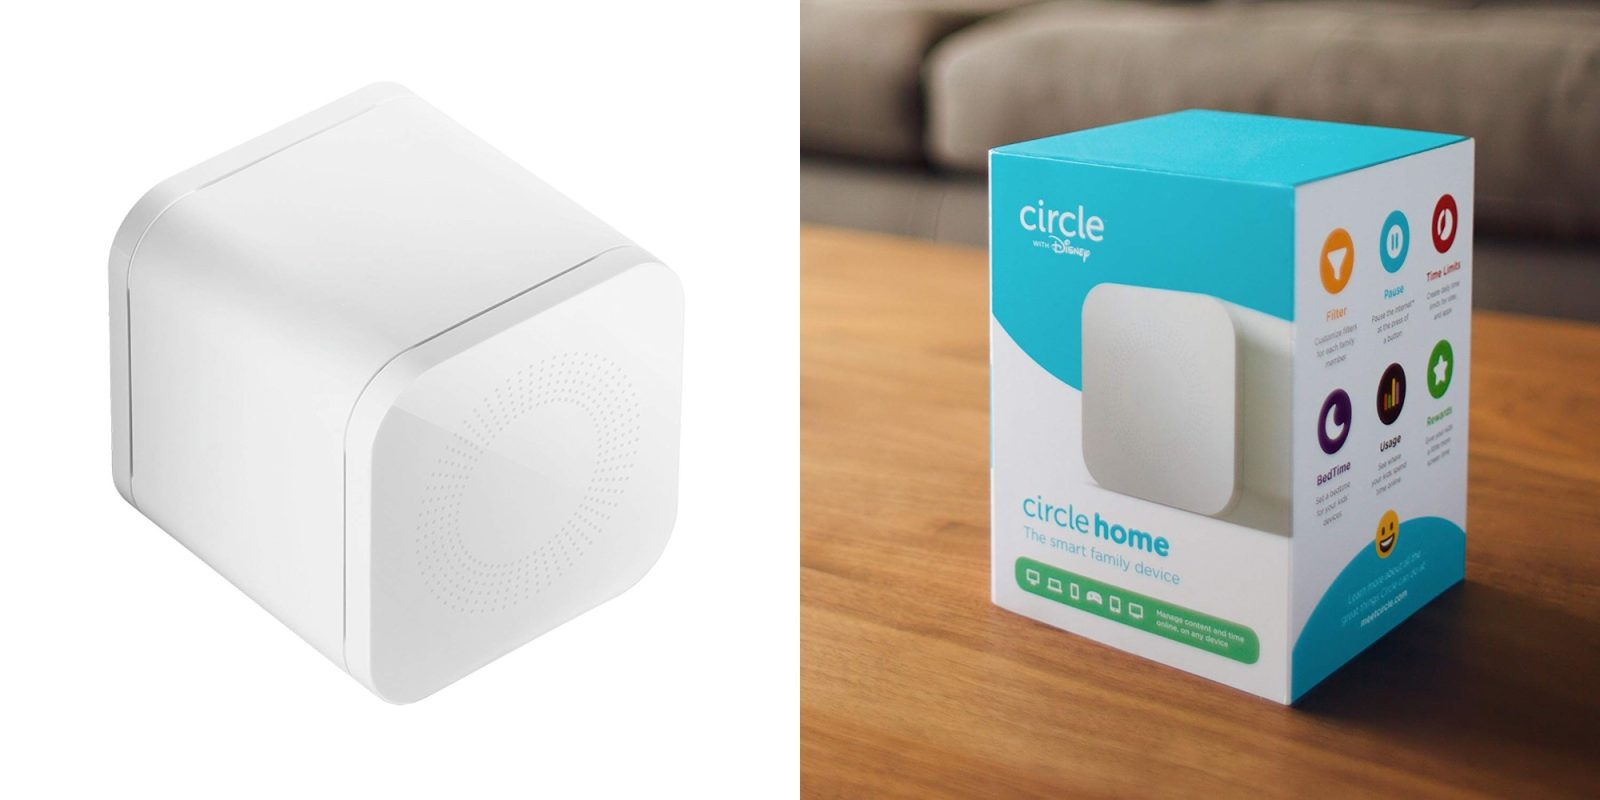 Circle with Disney manages your Wi-Fi's content filtering at $24 (25% off)